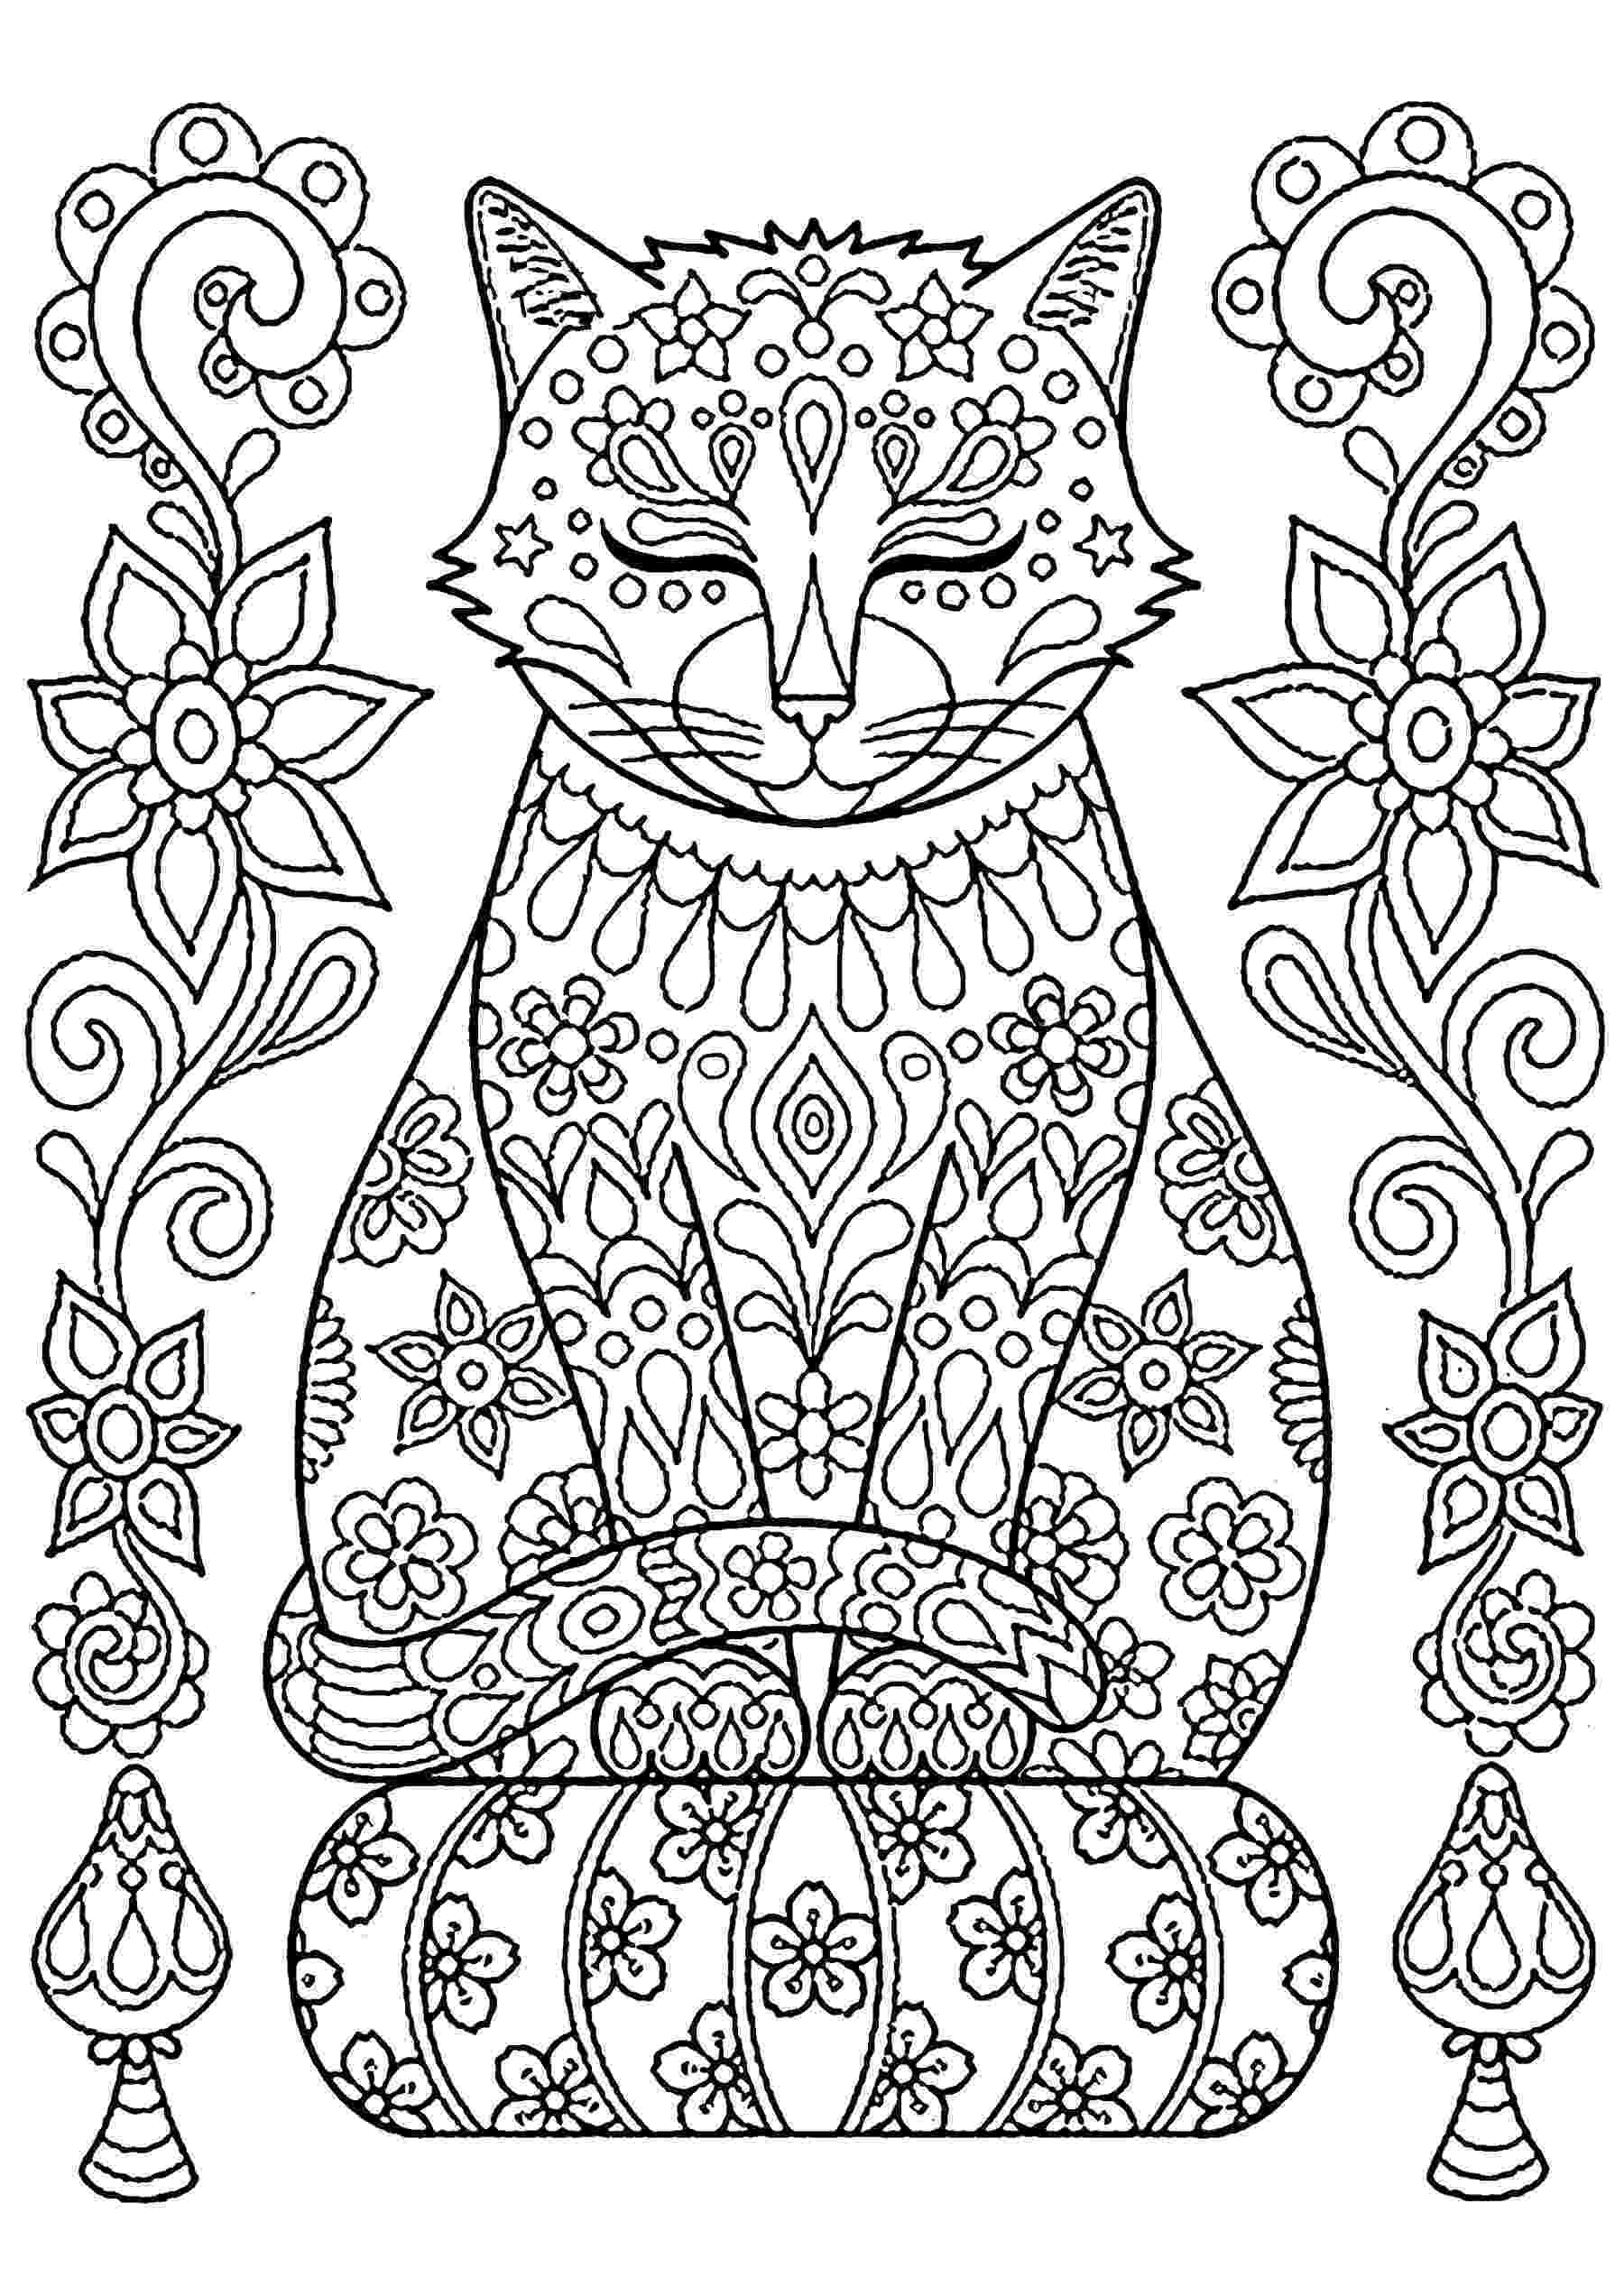 free online coloring pages for adults cats cat to download cat on pillow cats kids coloring pages cats for coloring pages online free adults